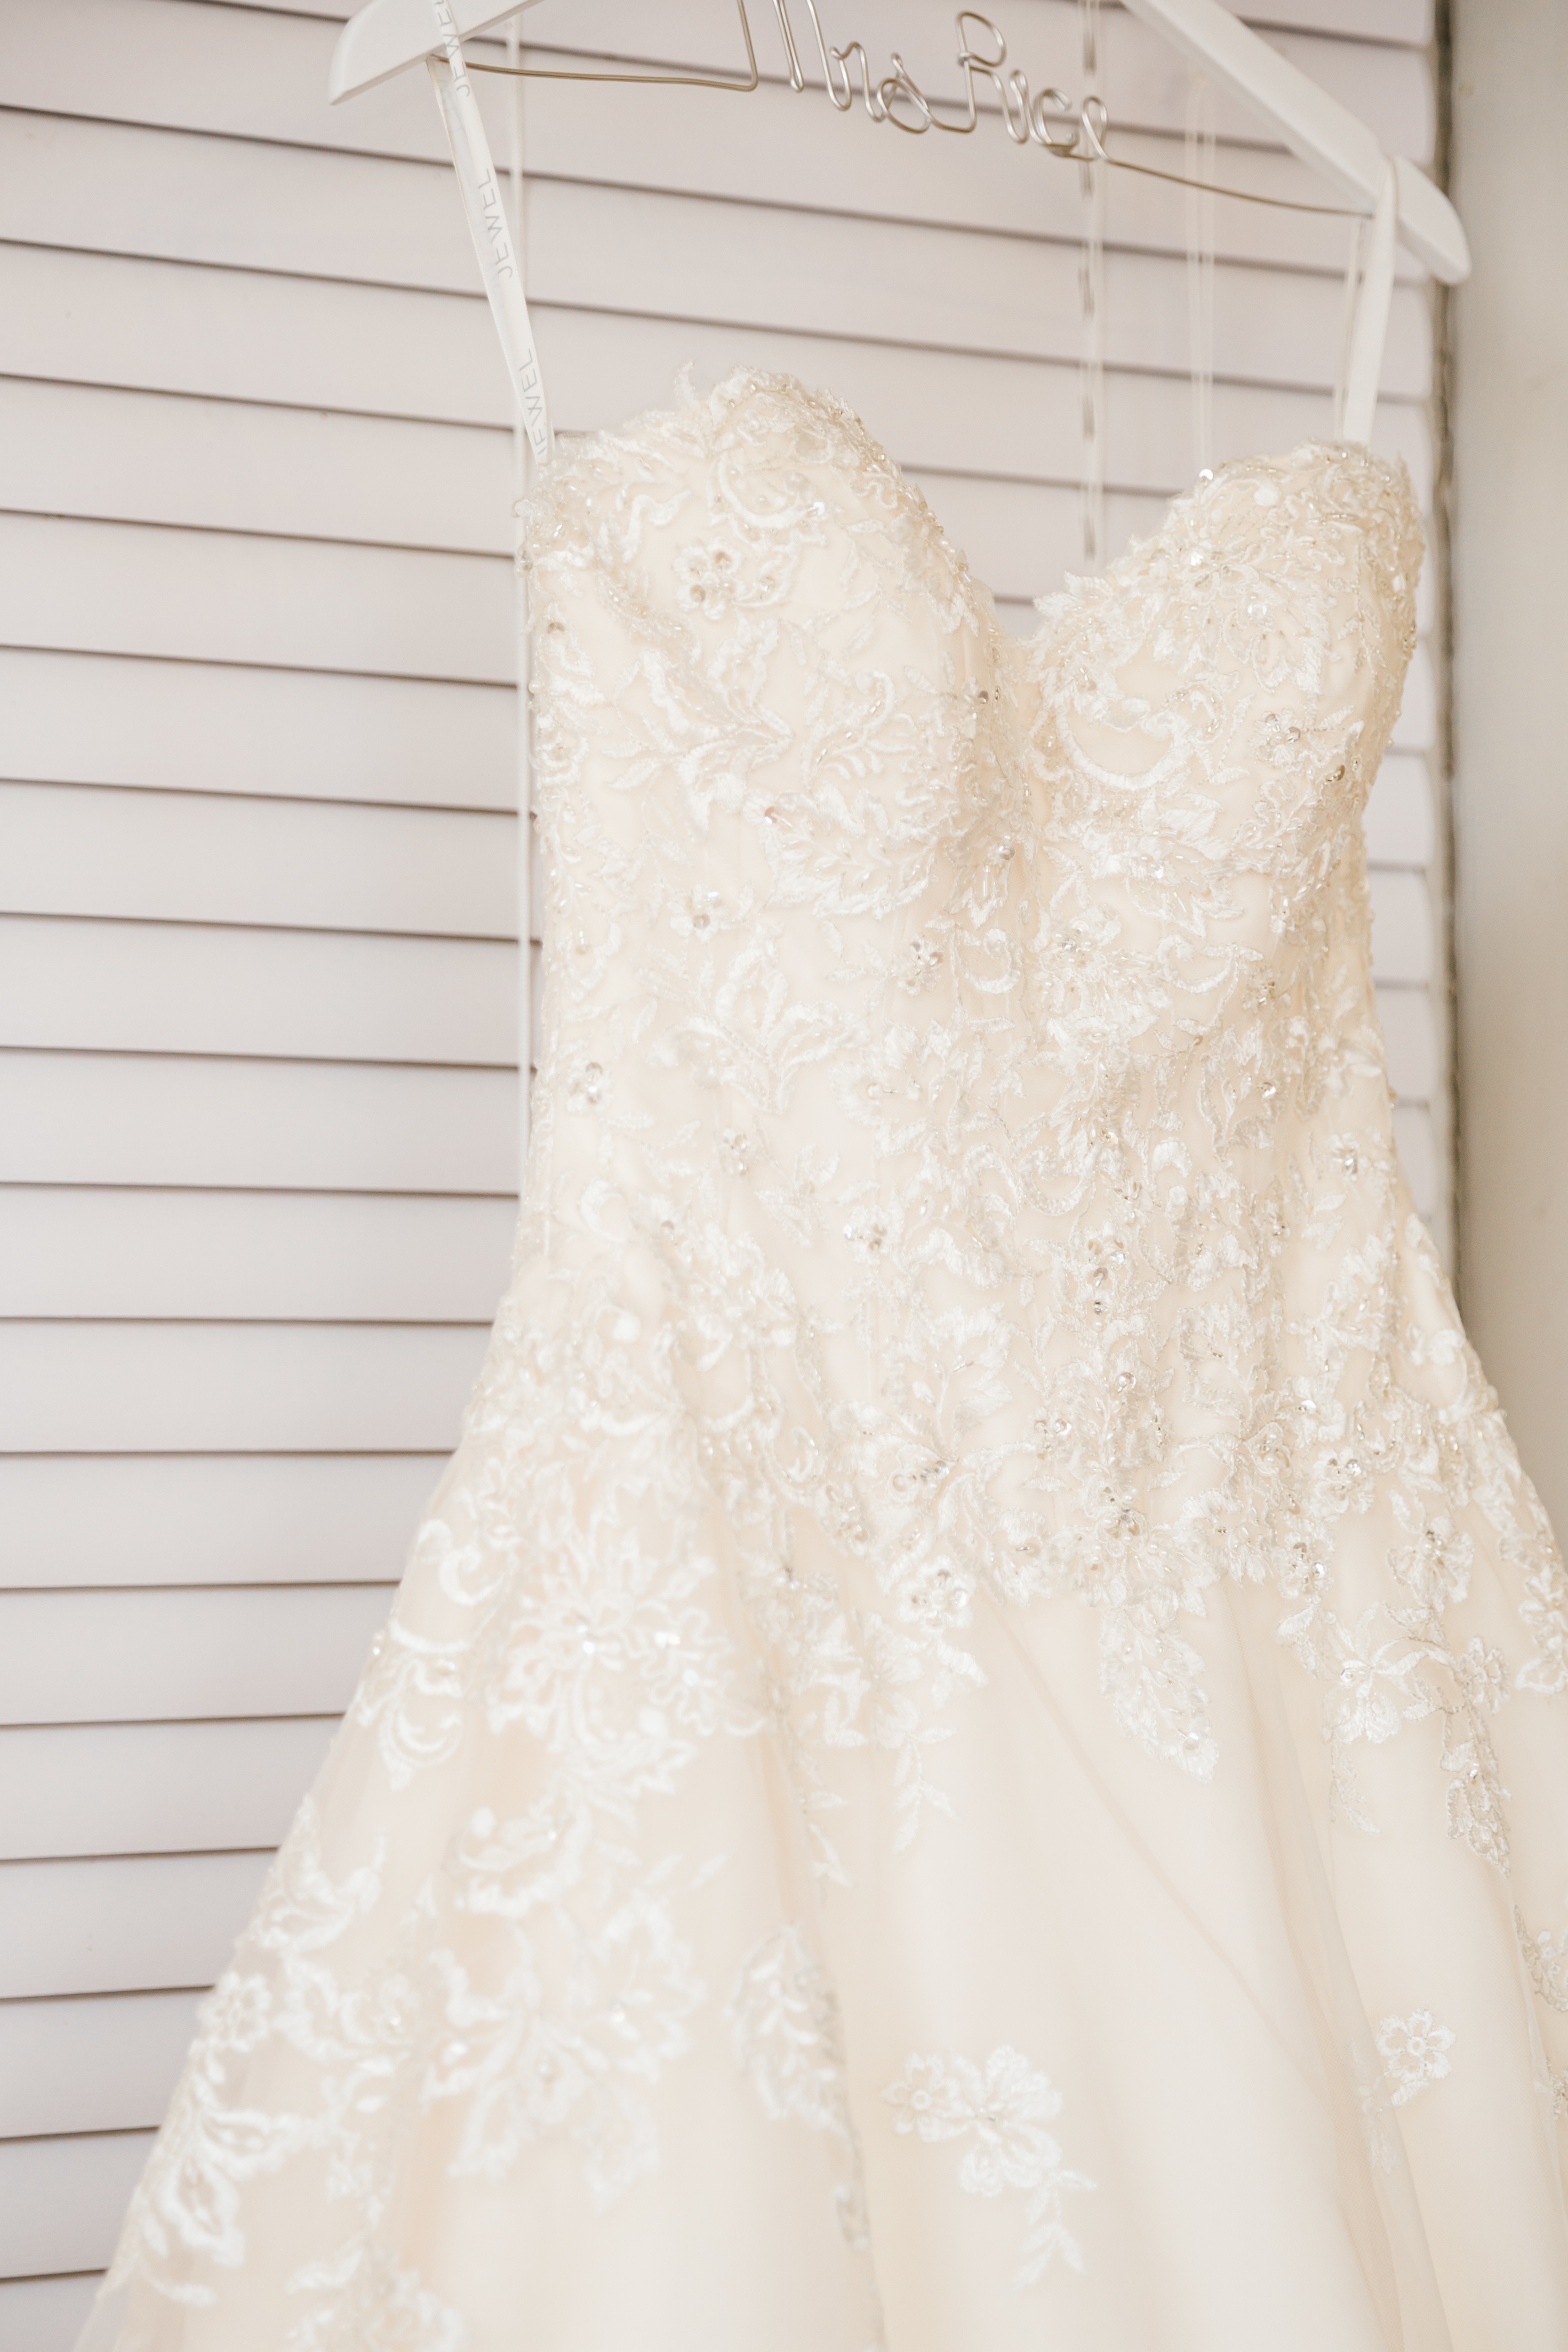 Jewel by David's Bridal - Strapless beaded lace ball gown wedding dress